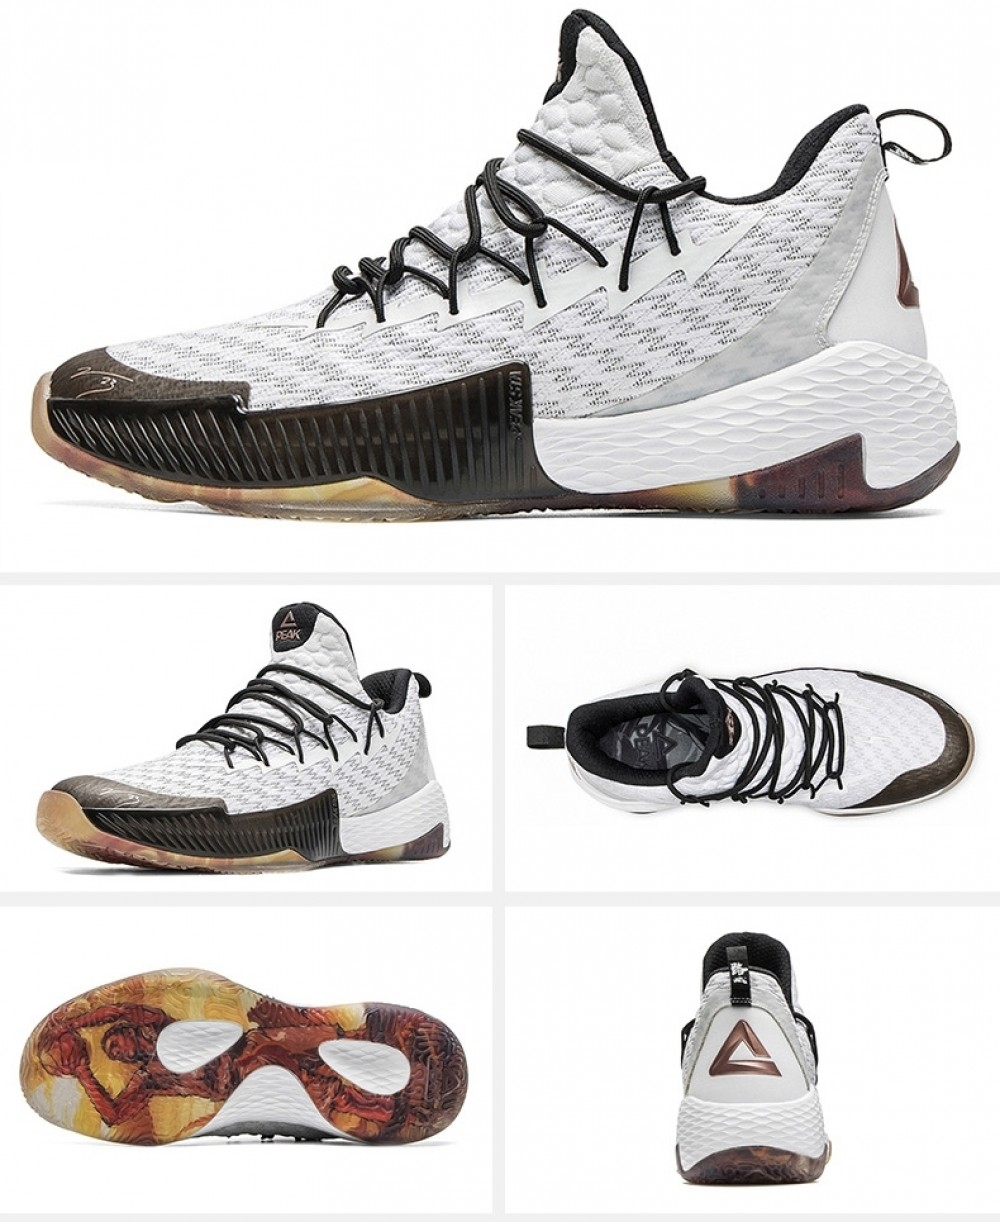 Peak Louis Williams 2019 NBA PLAYOFFS Basketball Sneakers - White · PEAK Sports Brand · Online Store Powered by Storenvy